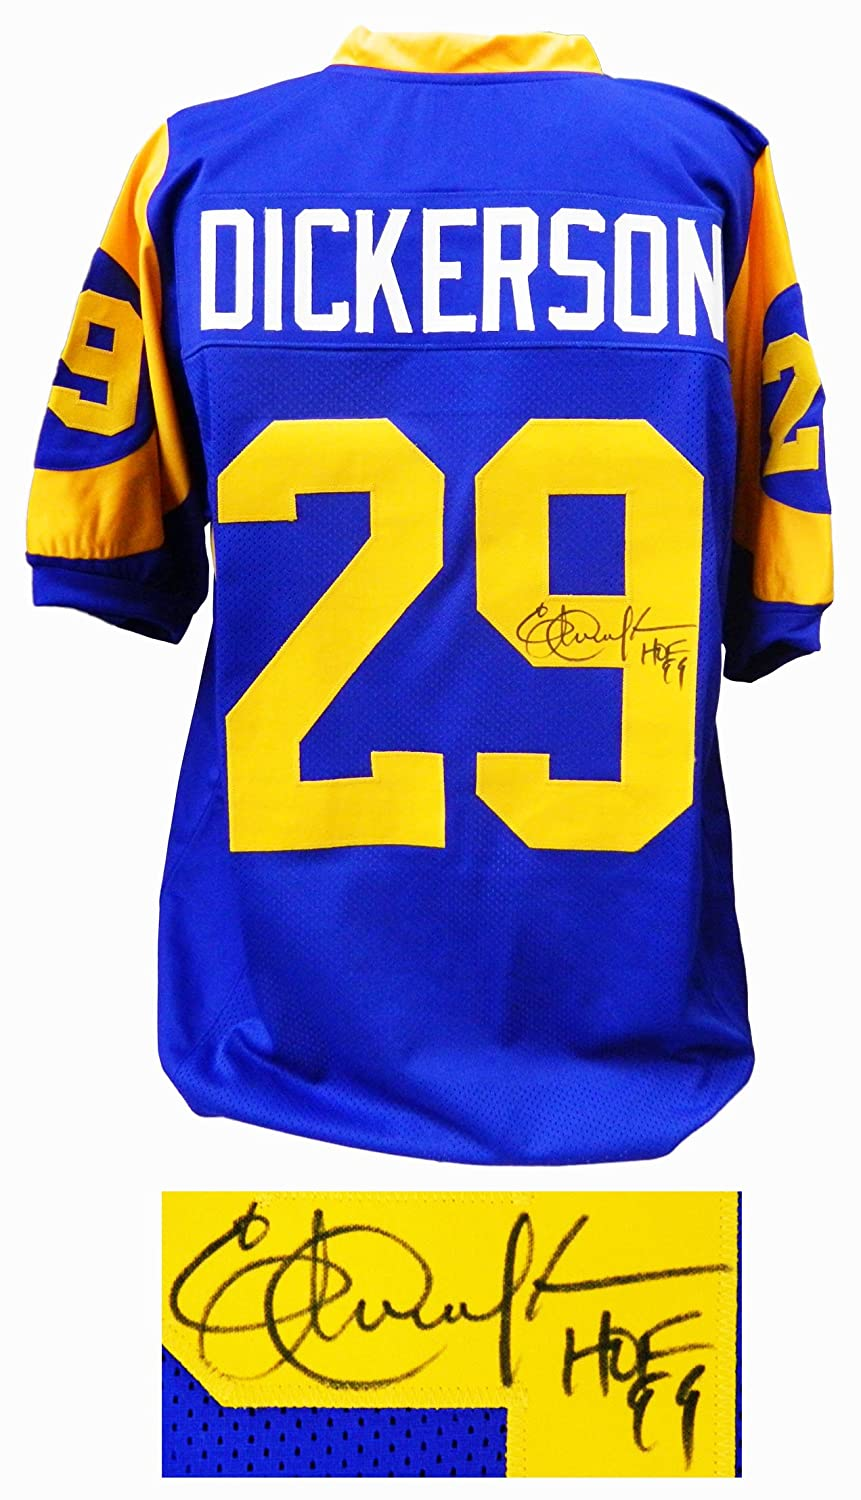 huge discount 004c5 47ccb Los Angeles Rams Eric Dickerson Signed Blue & Yellow ...